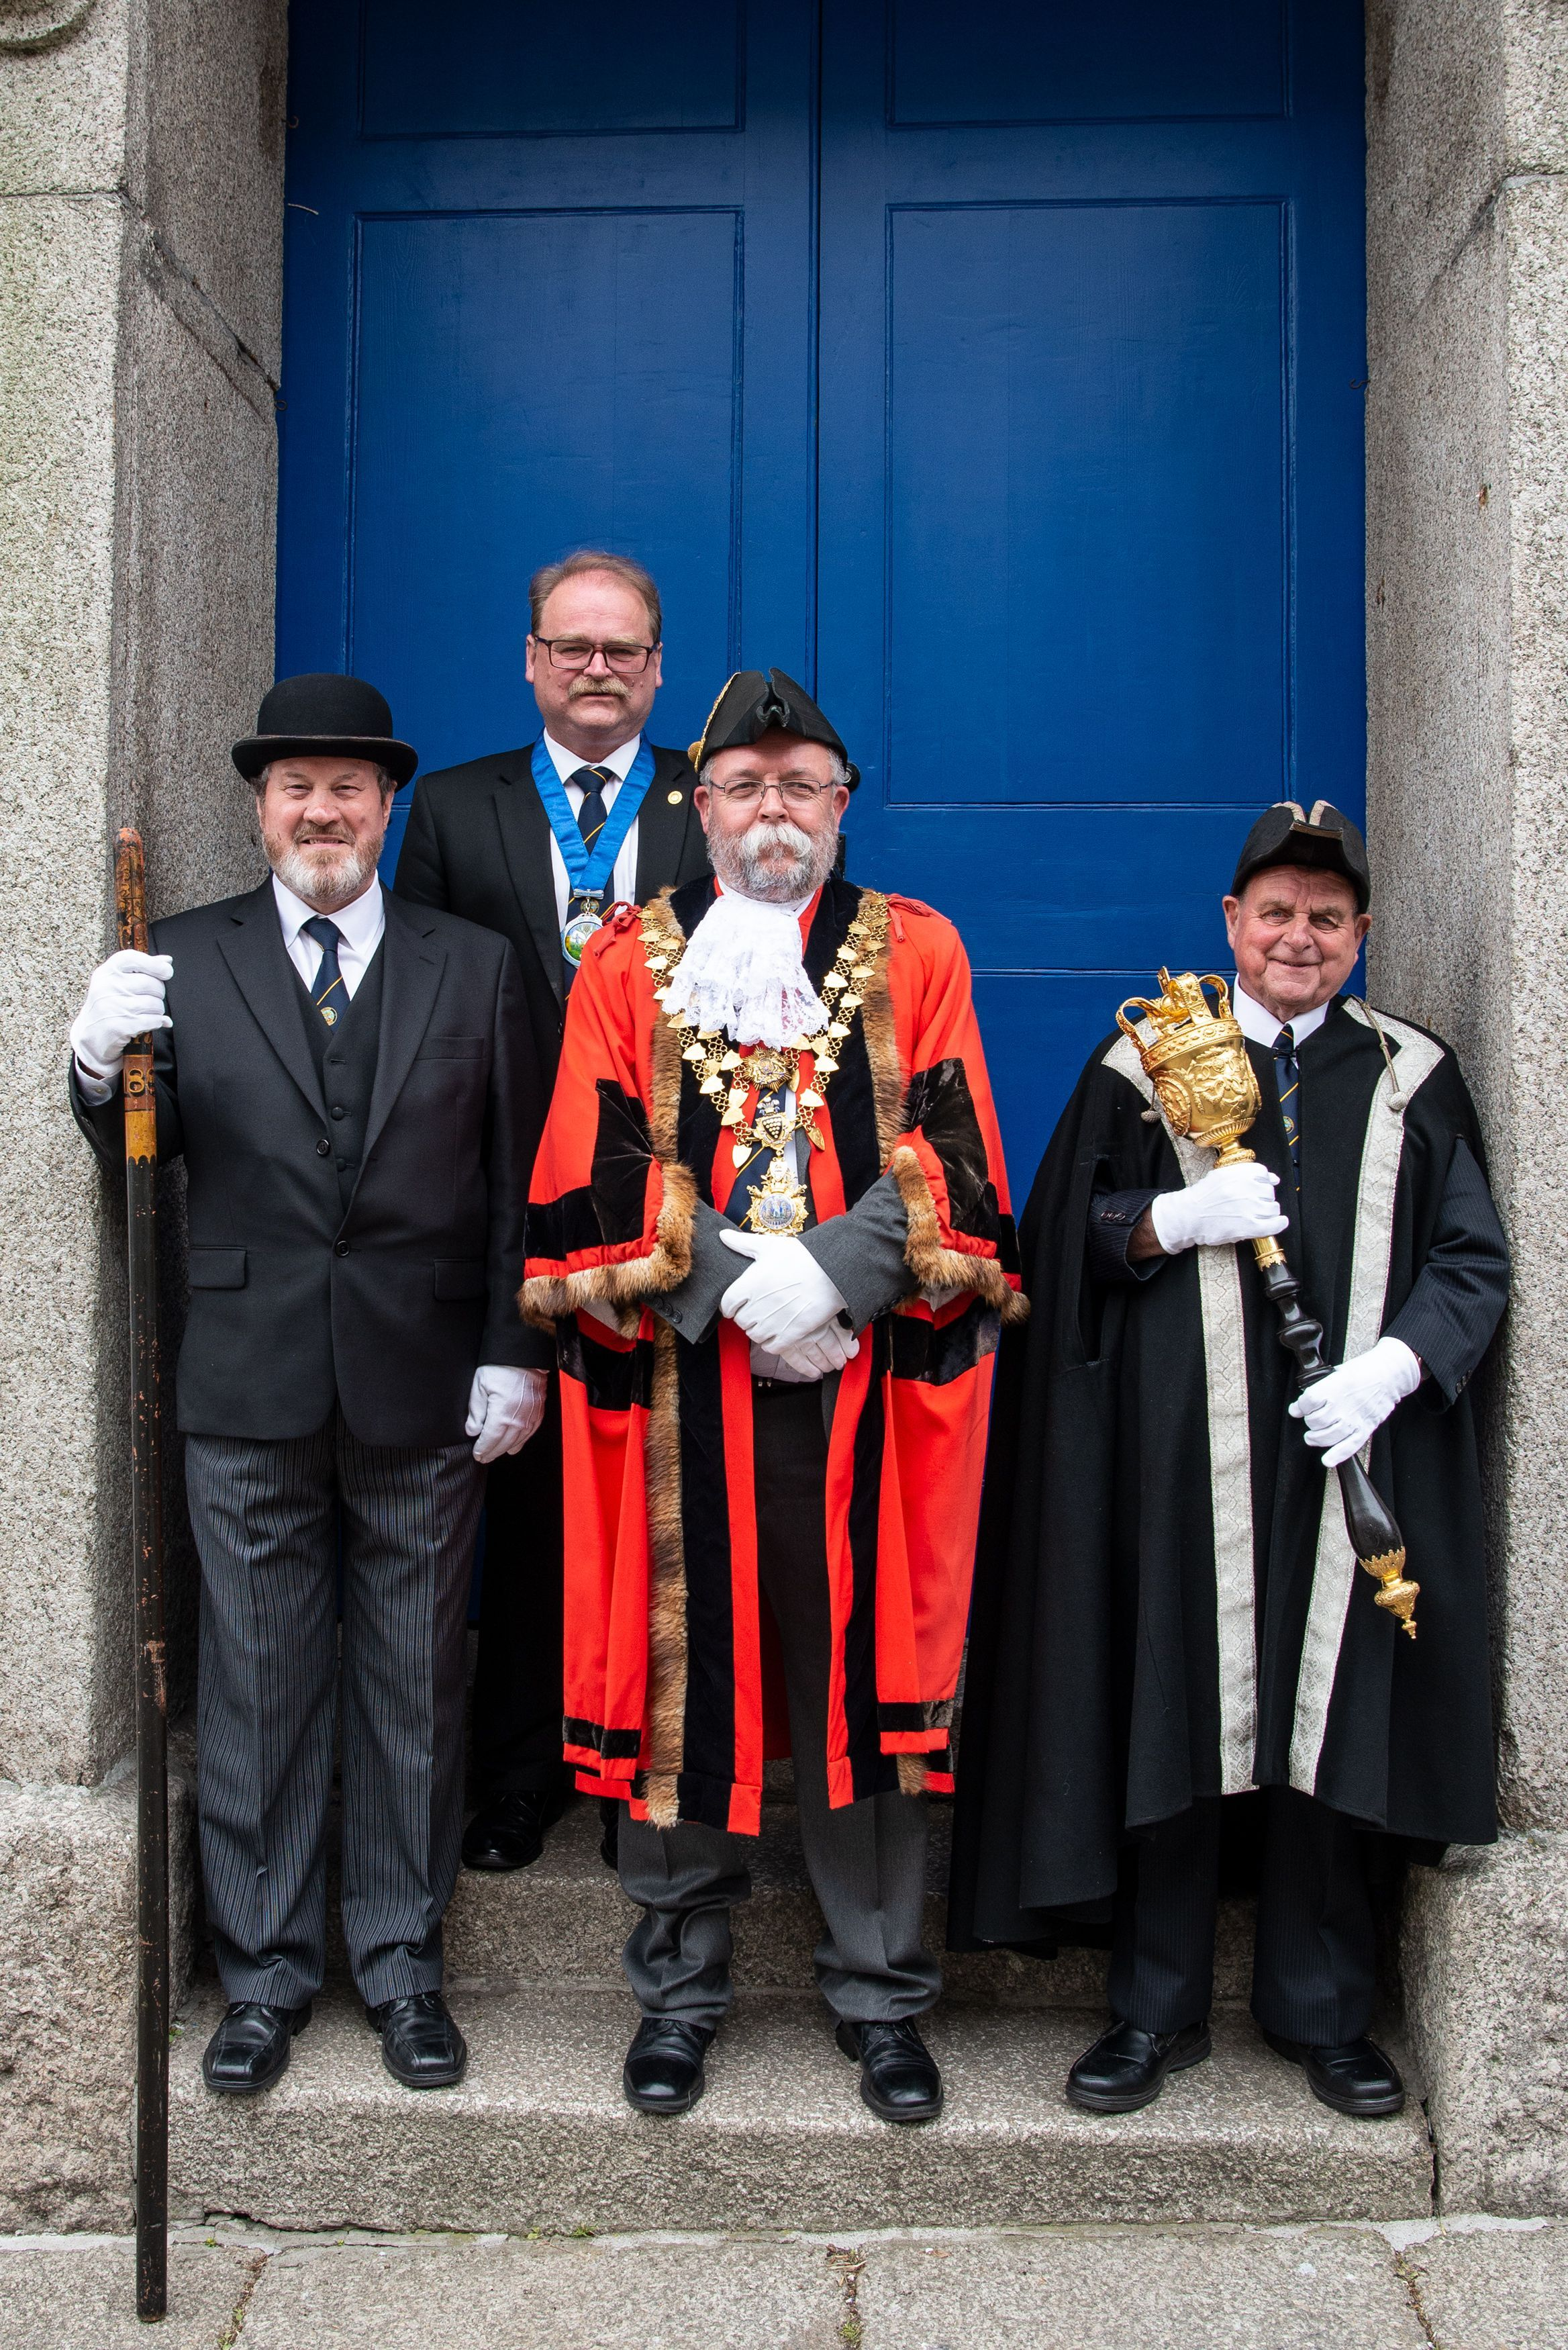 New mayor John Martin and his deputy Tim Gratthan-Kane, with the town beadle and mace bearer